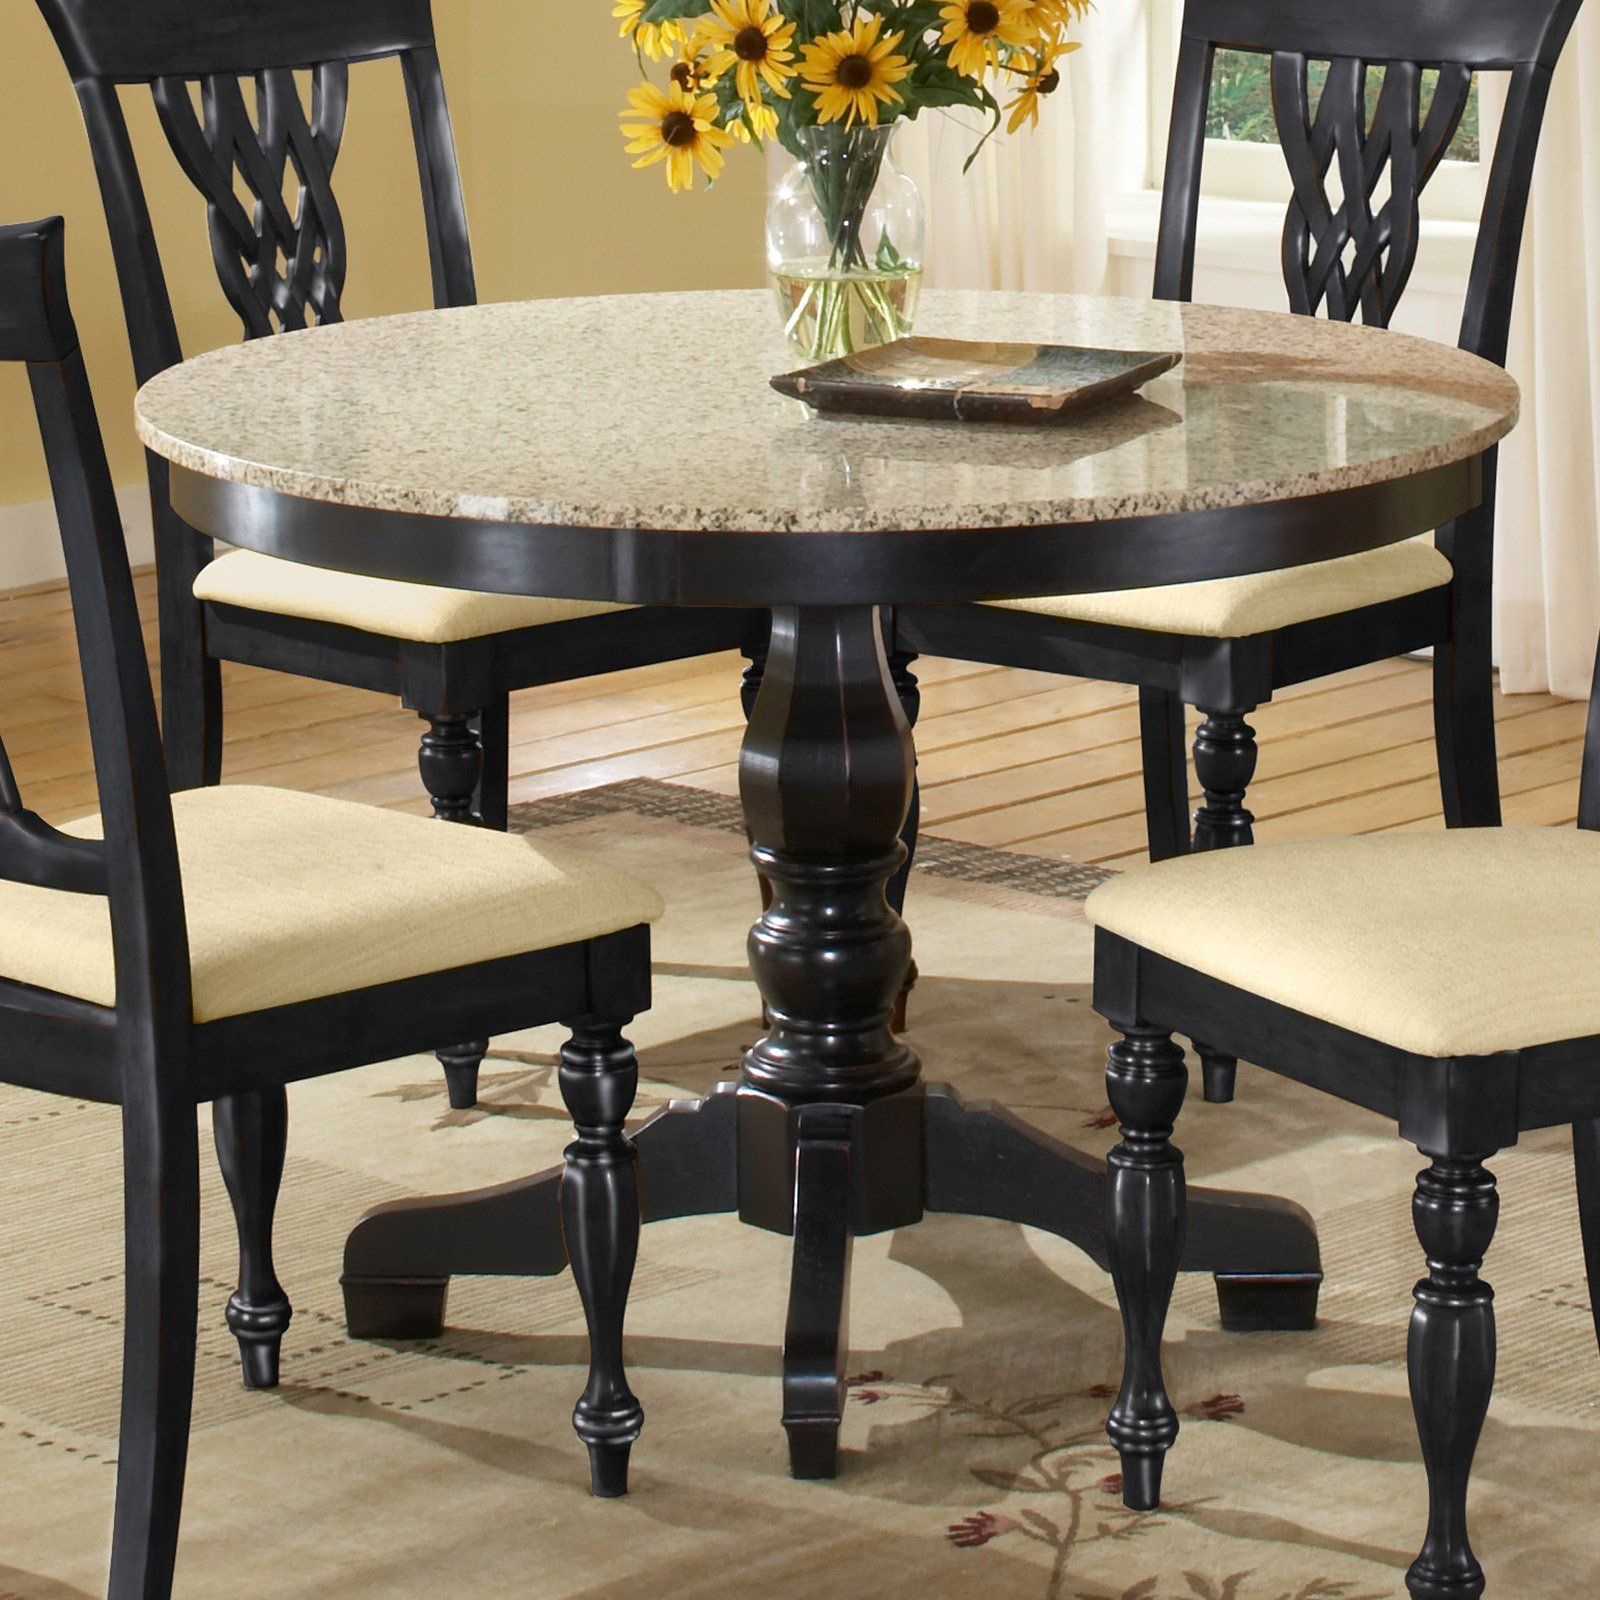 25 Best Ideas Johnson Round Pedestal Dining Tables | Dining Room Ideas